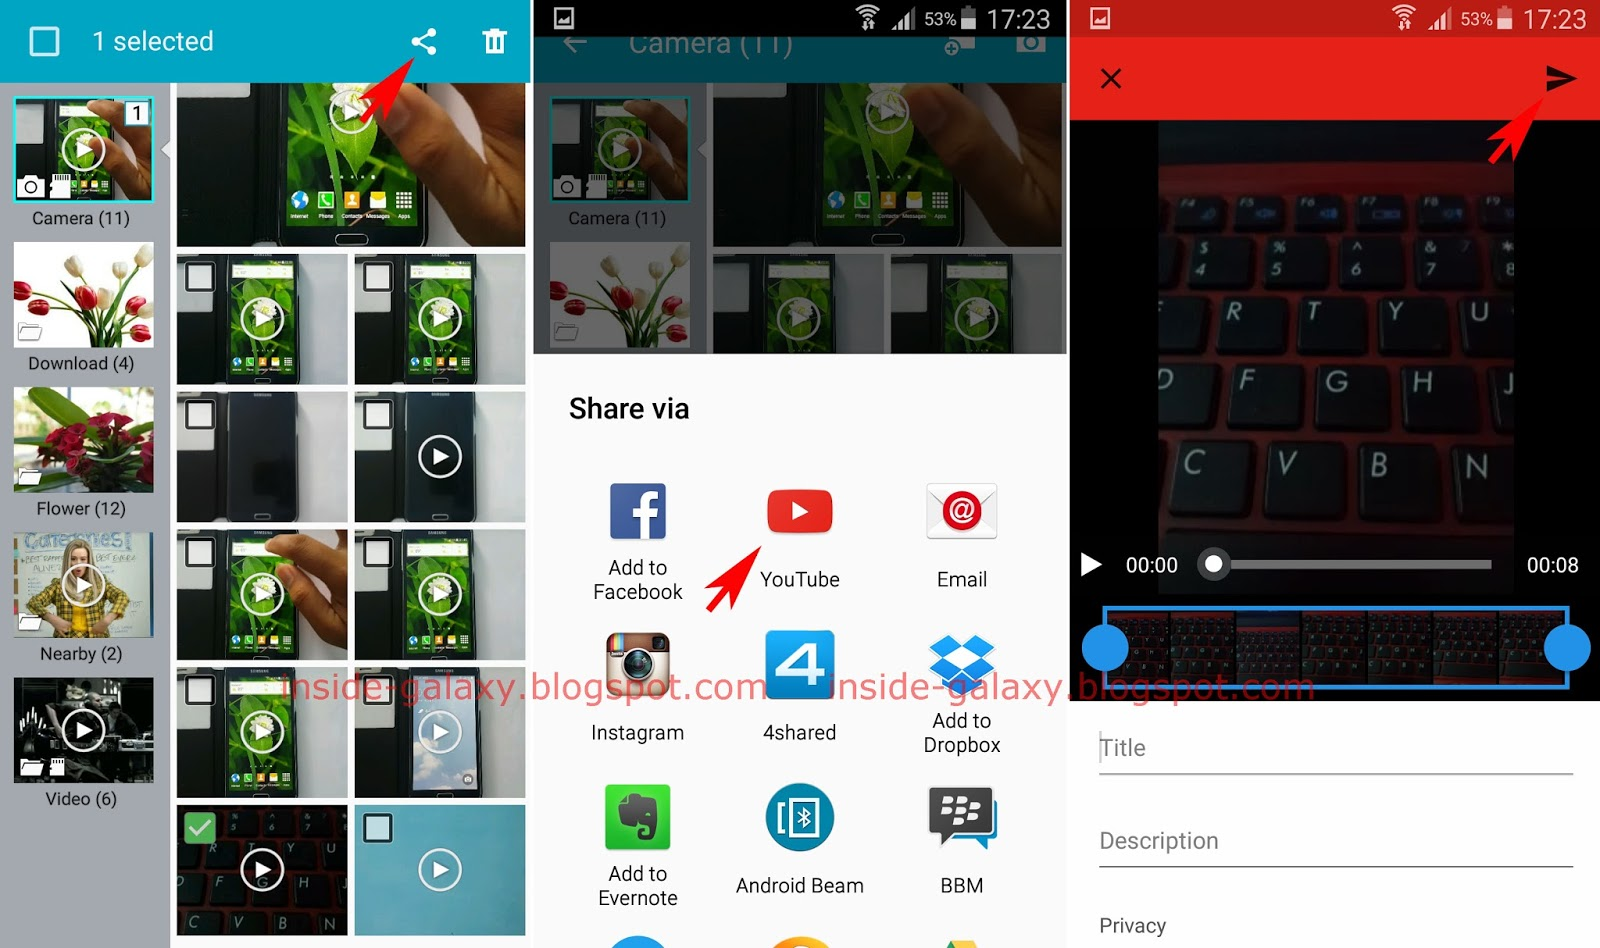 Samsung Galaxy S4: How to Upload a Video to Youtube From Gallery or